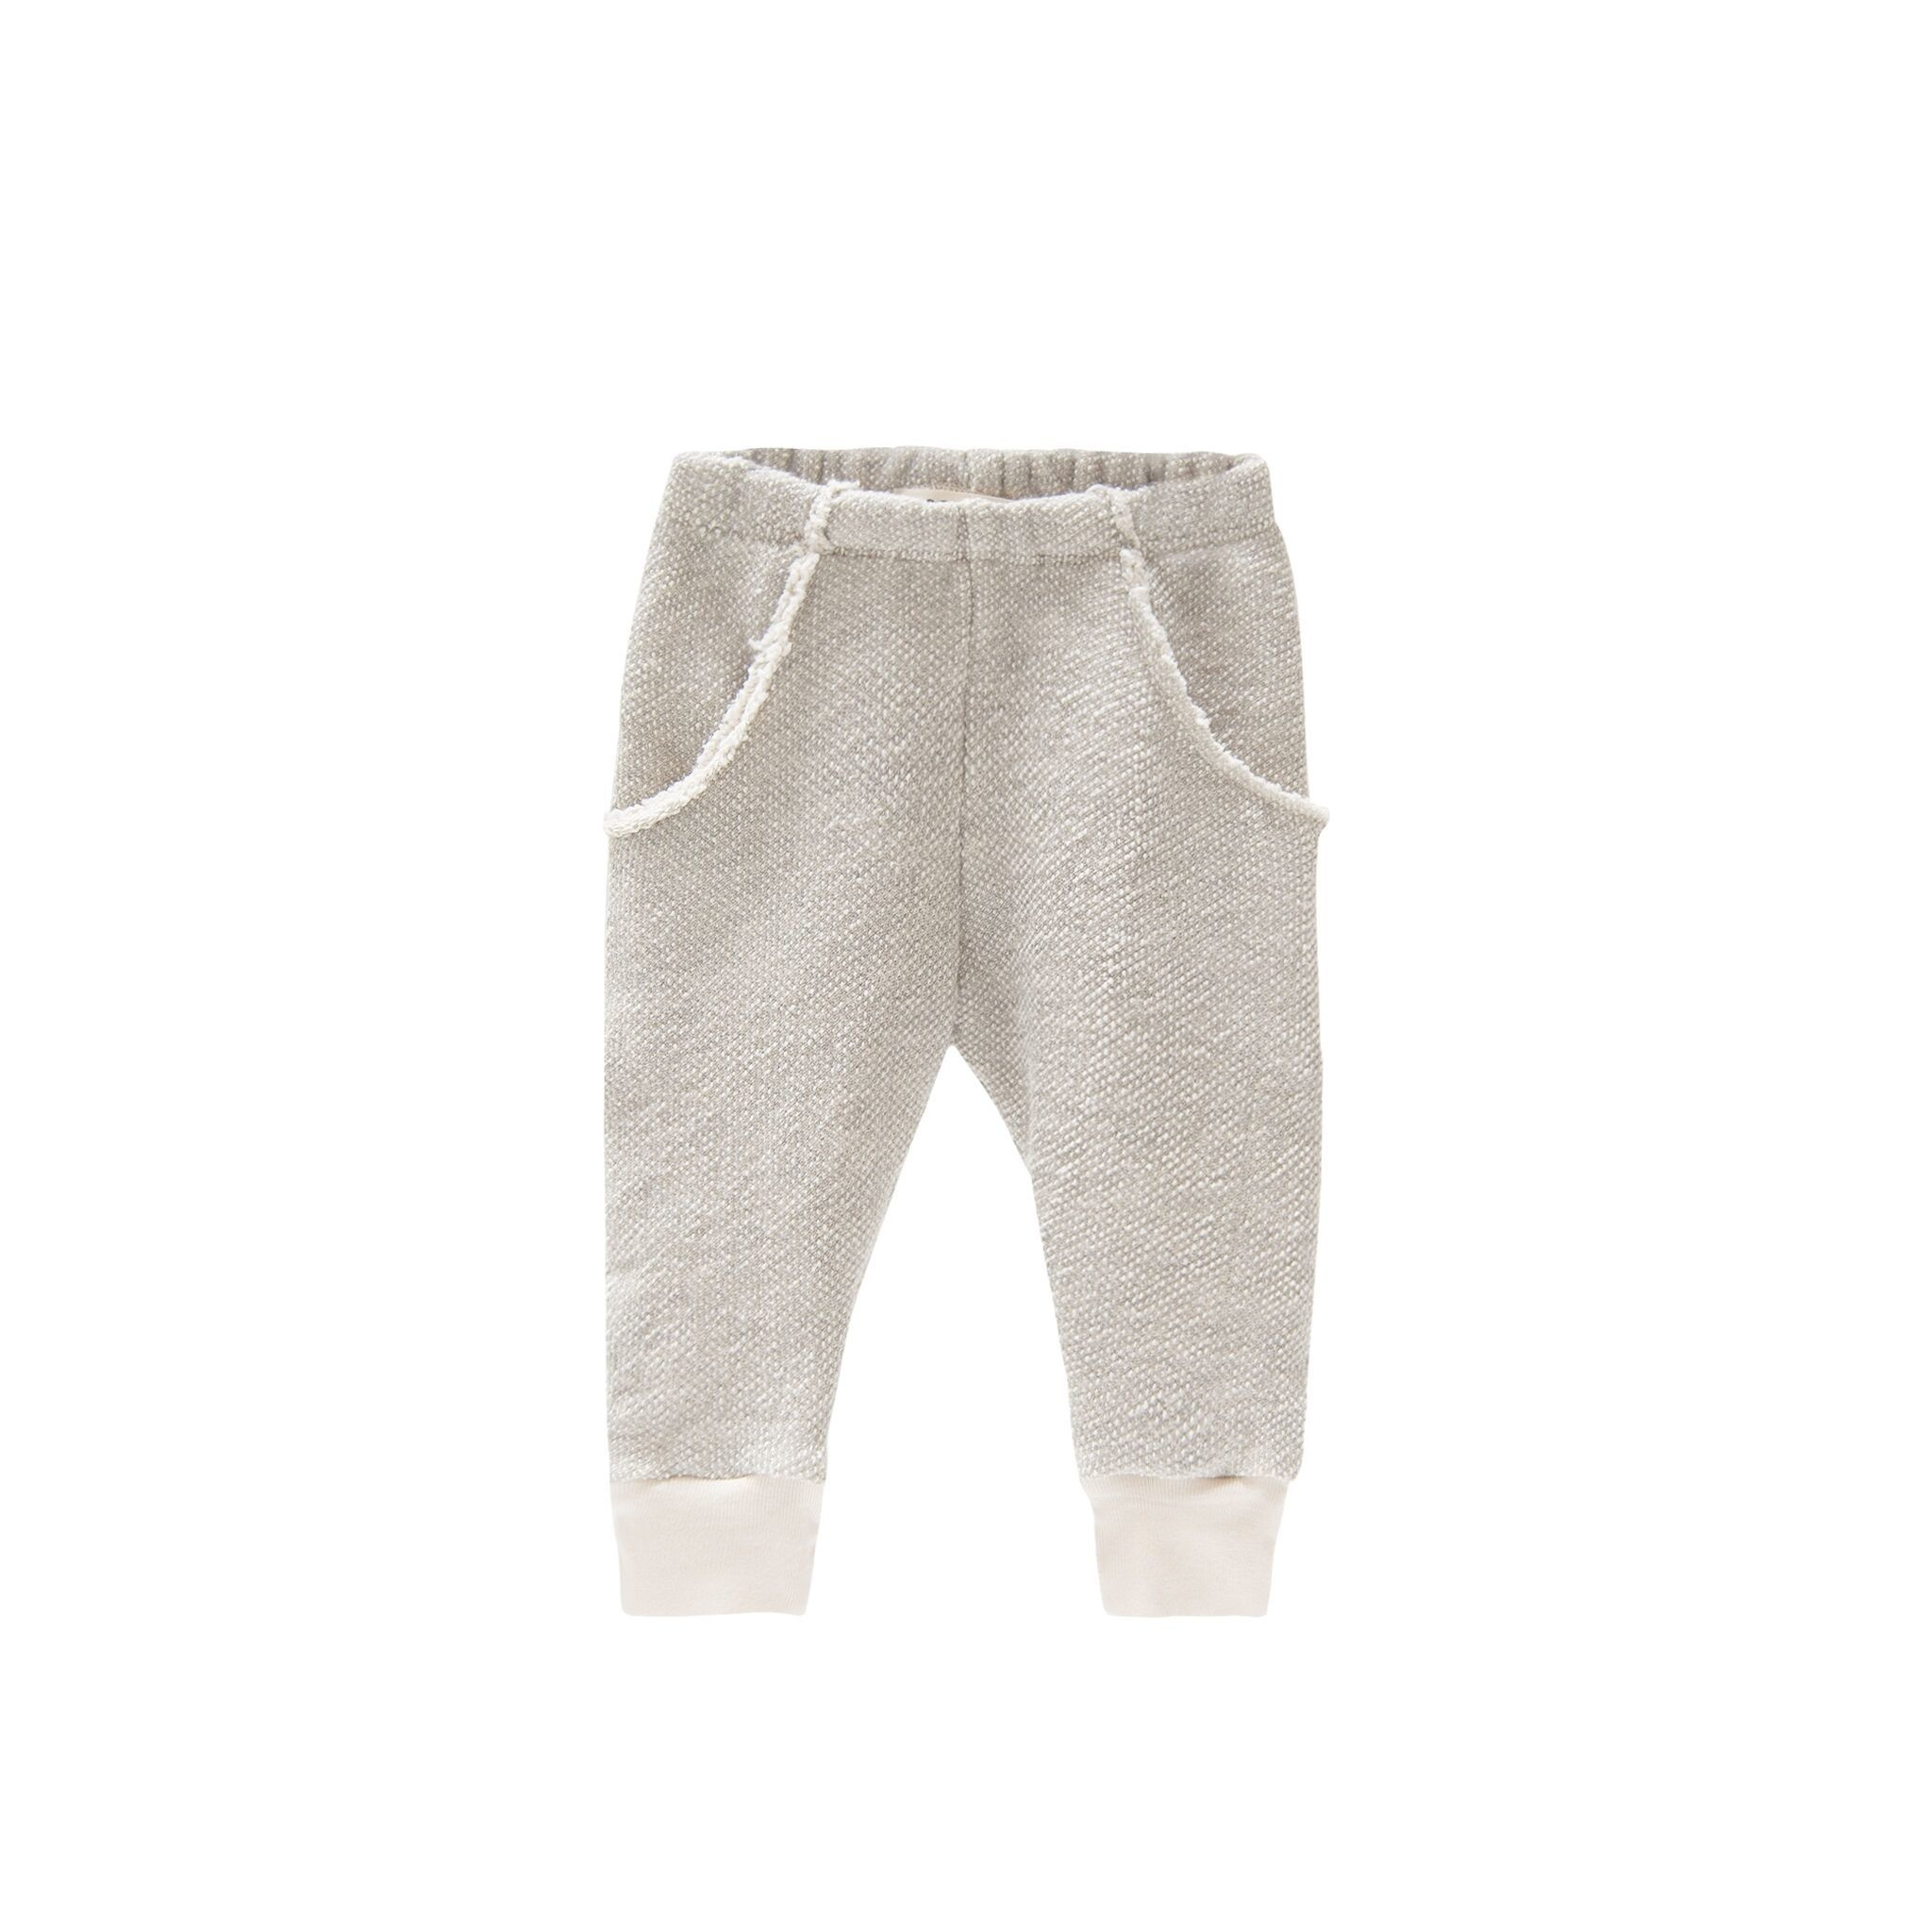 GOGENTLYNATION Textured Raw Pocket Track Pant